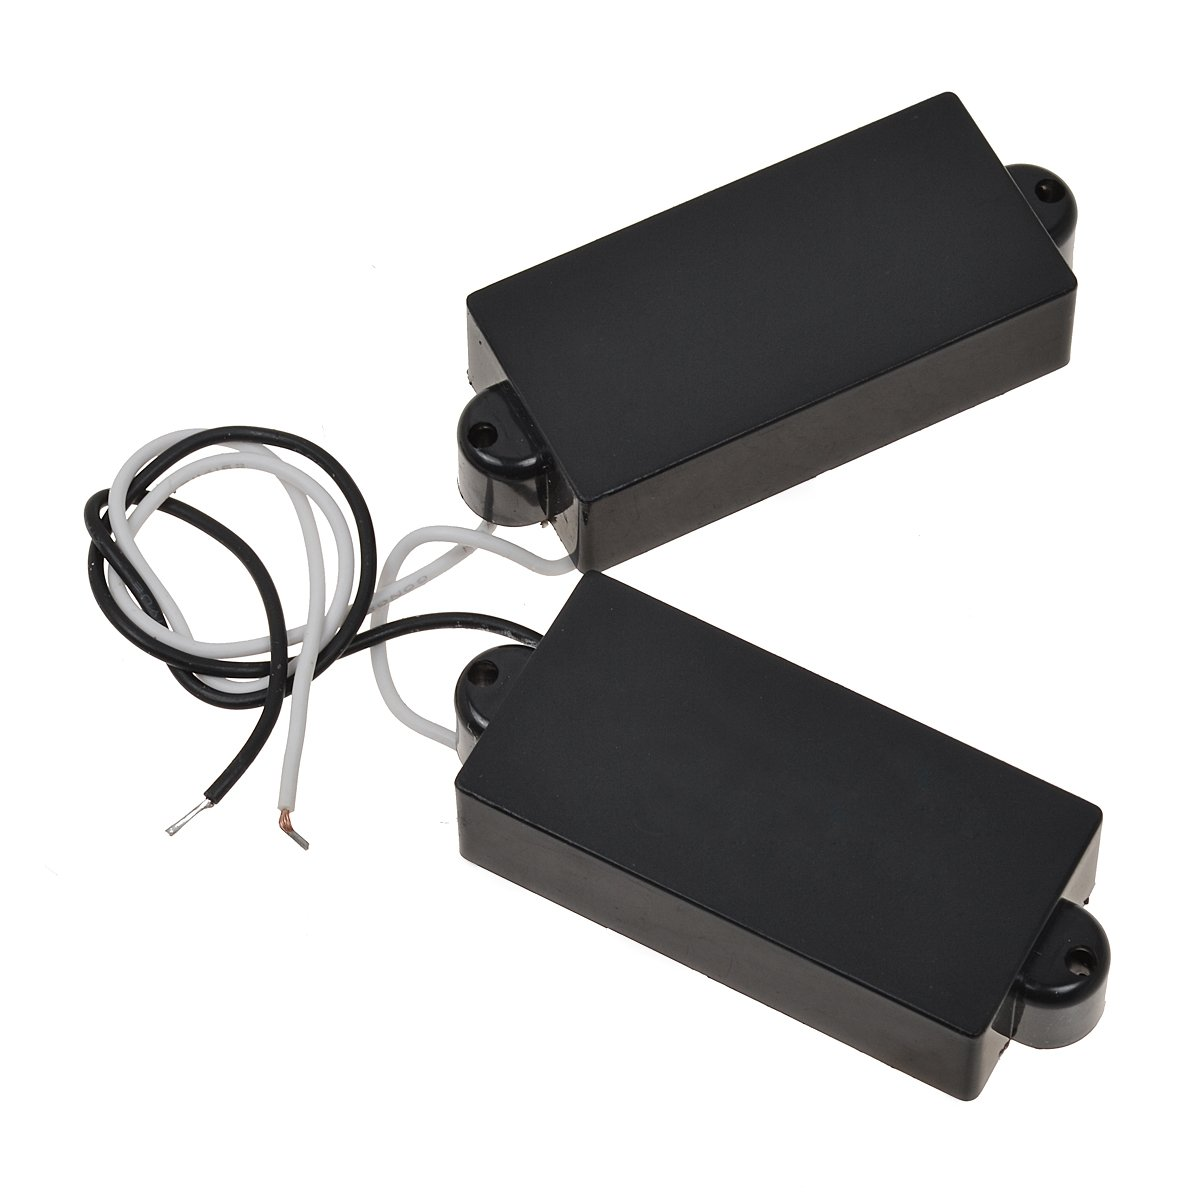 Black 4 String Electric Pickup Humbucker For Precision Bass Guitar 1 Pair From Kmise (MI0658) MI0658-KUS